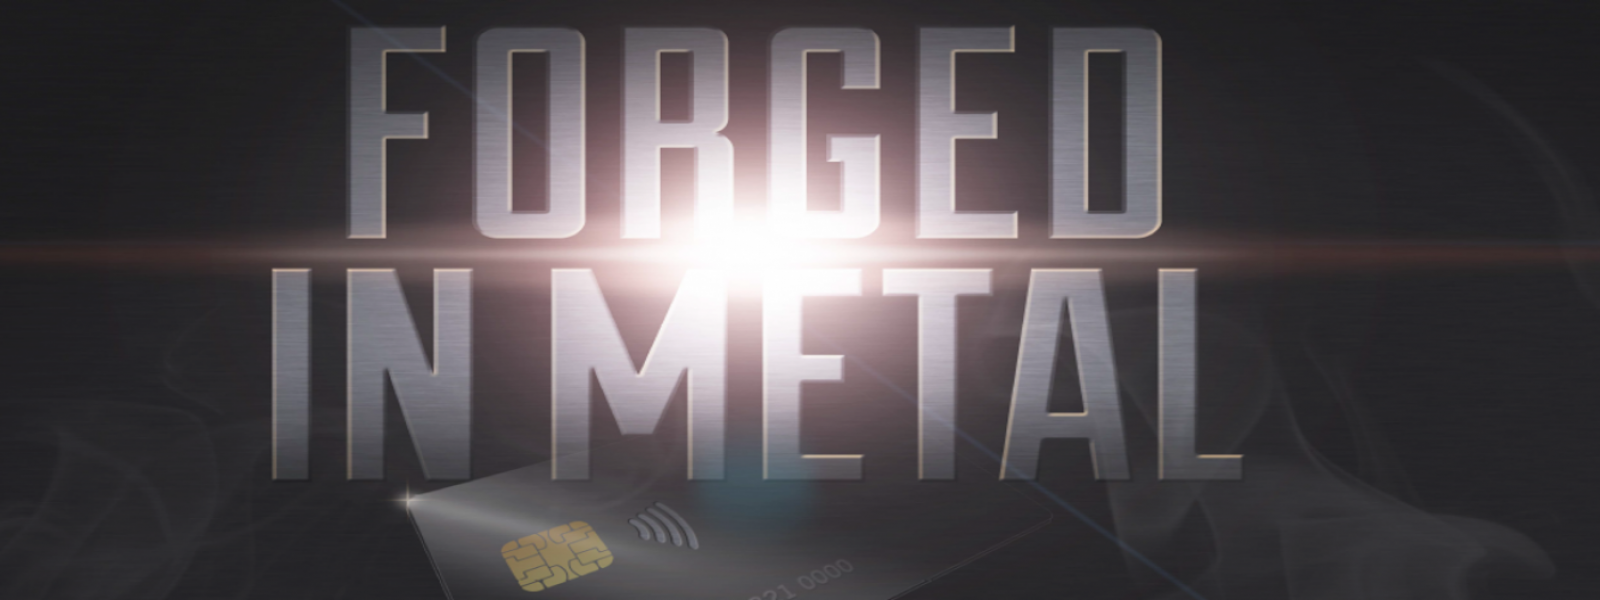 New metal bank card from Paragon ID